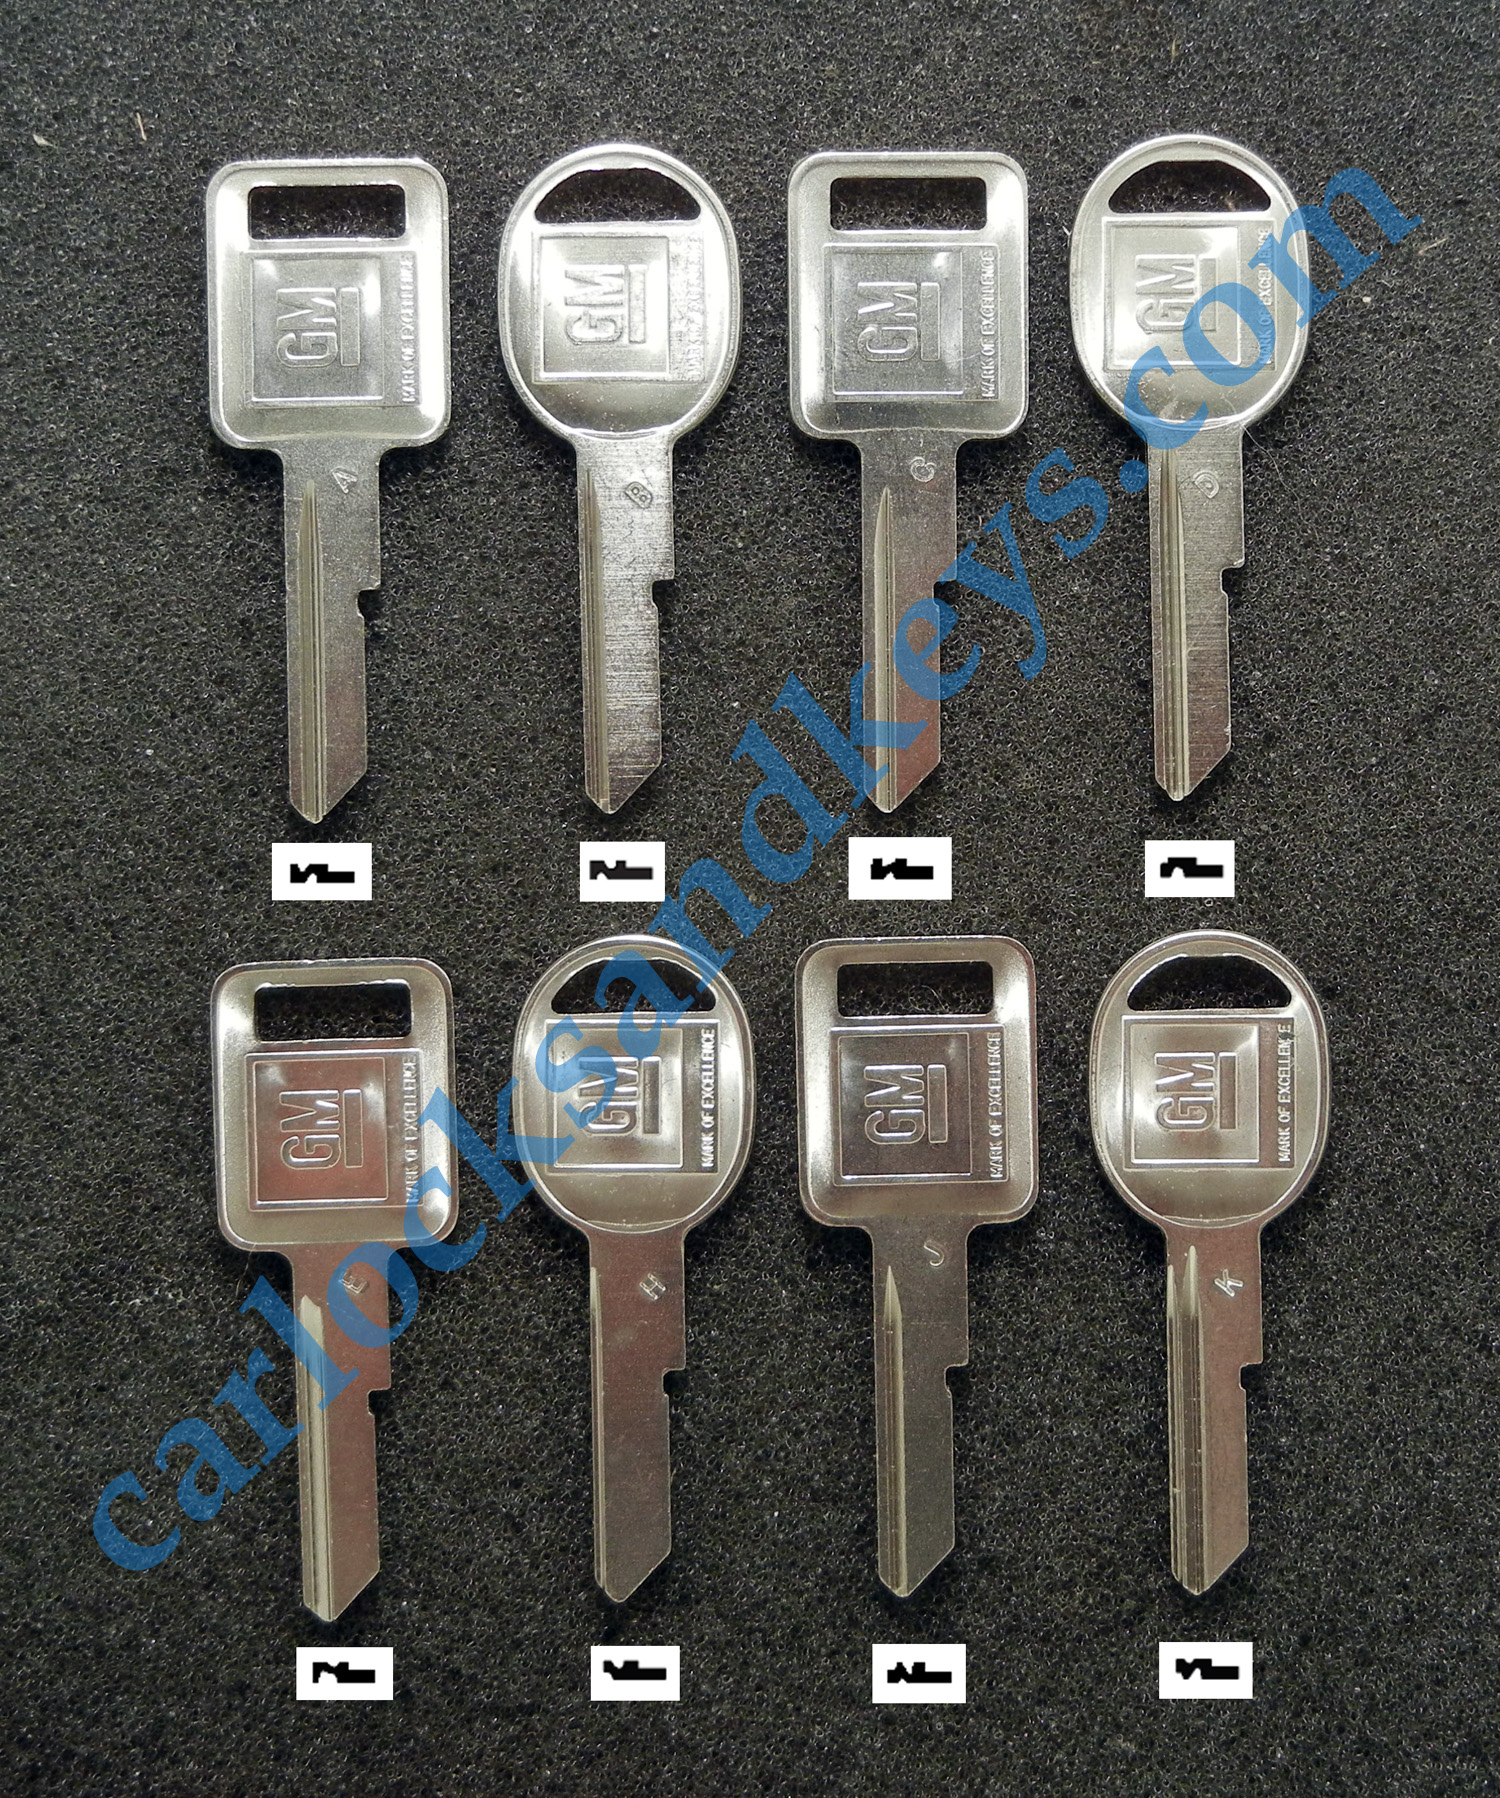 Features likewise Watch in addition Hyundai Grand I10 further Prx Nis 322 as well All About Gm General Motors Lettered Square And Round Key Blanks. on nissan ignition key